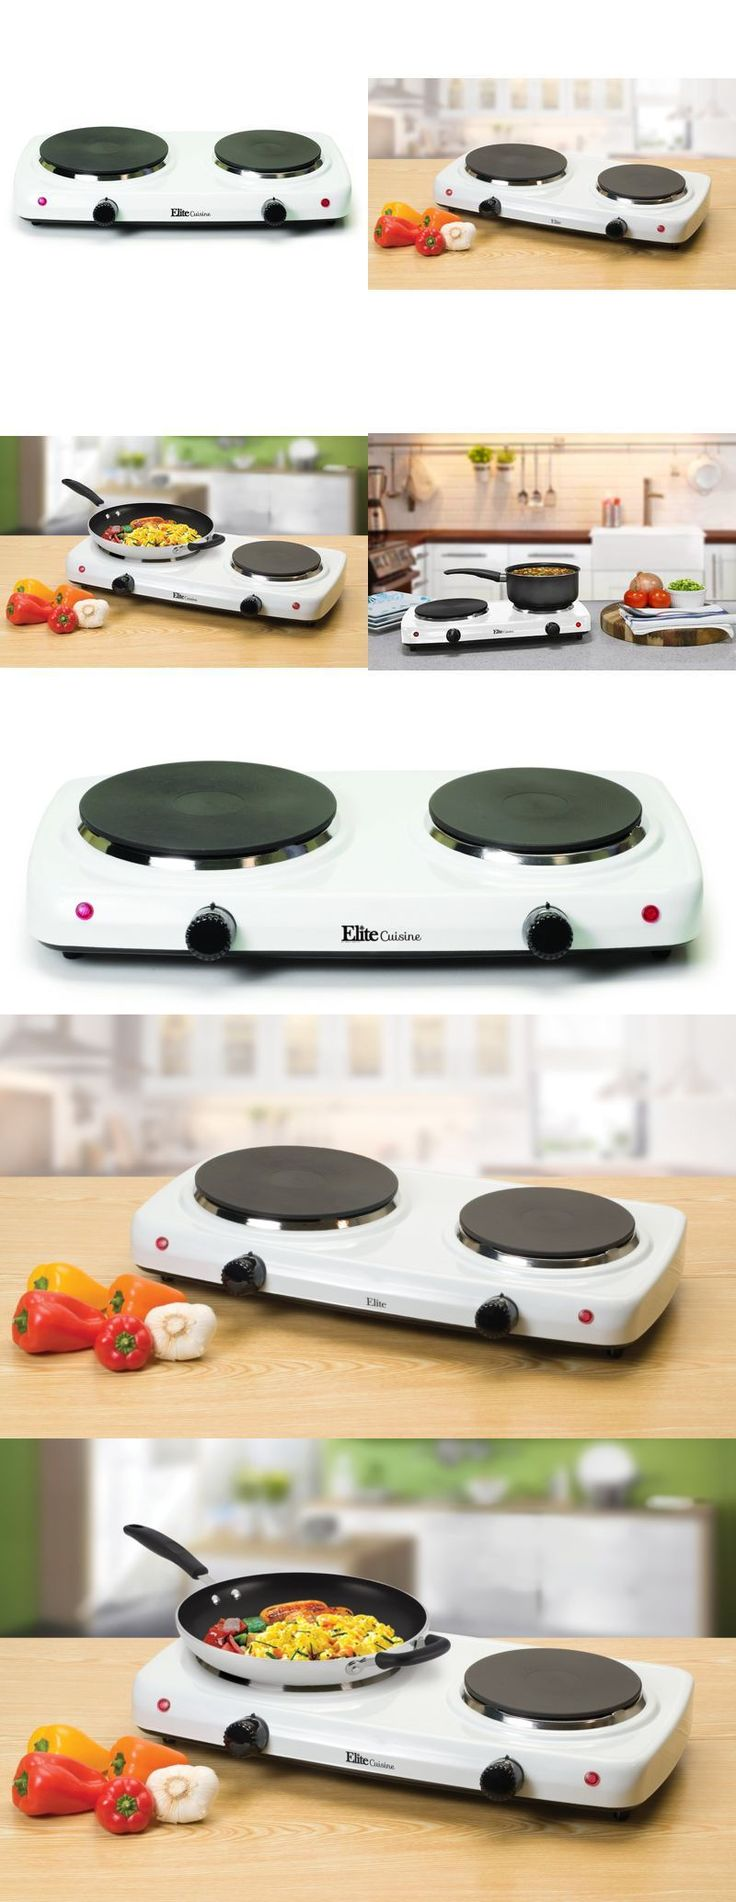 Best 20+ Portable stove ideas on Pinterest | Portable stove top ...